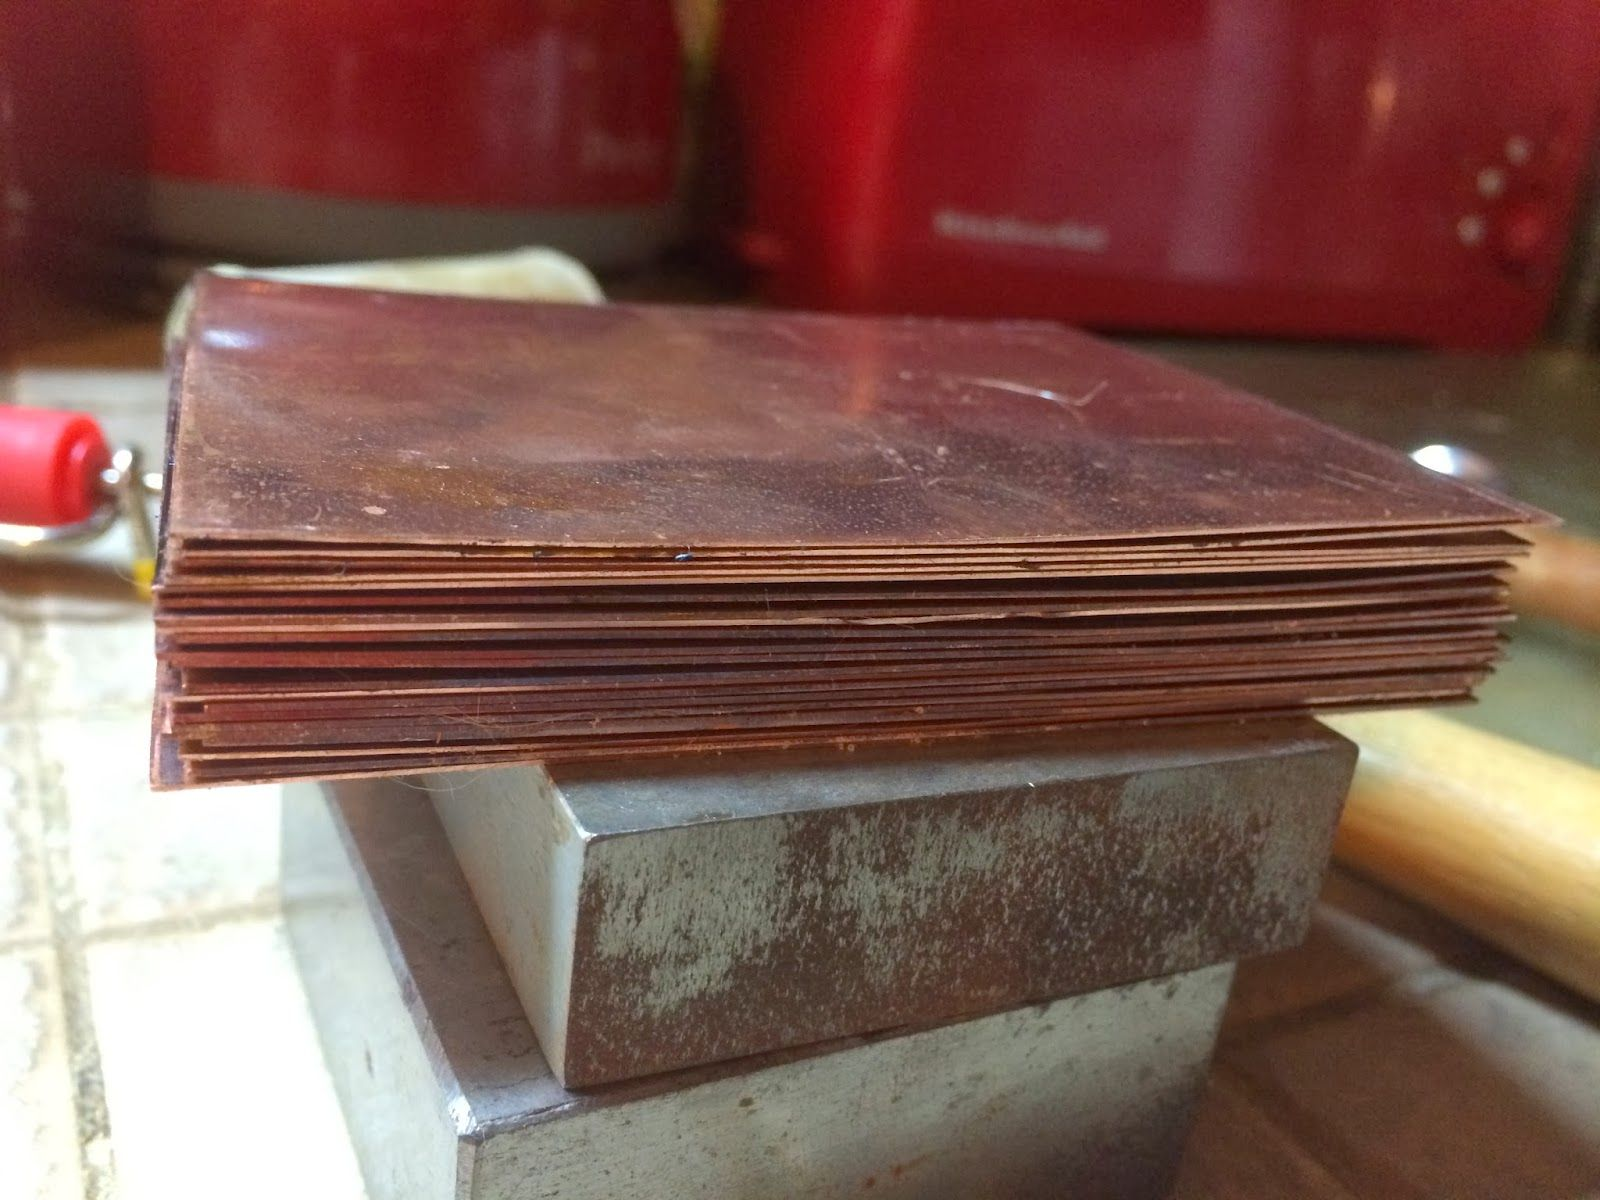 Deborhread Com Flattening And Cleaning Copper Sheet For Etching How To Clean Copper Copper Sheets Copper